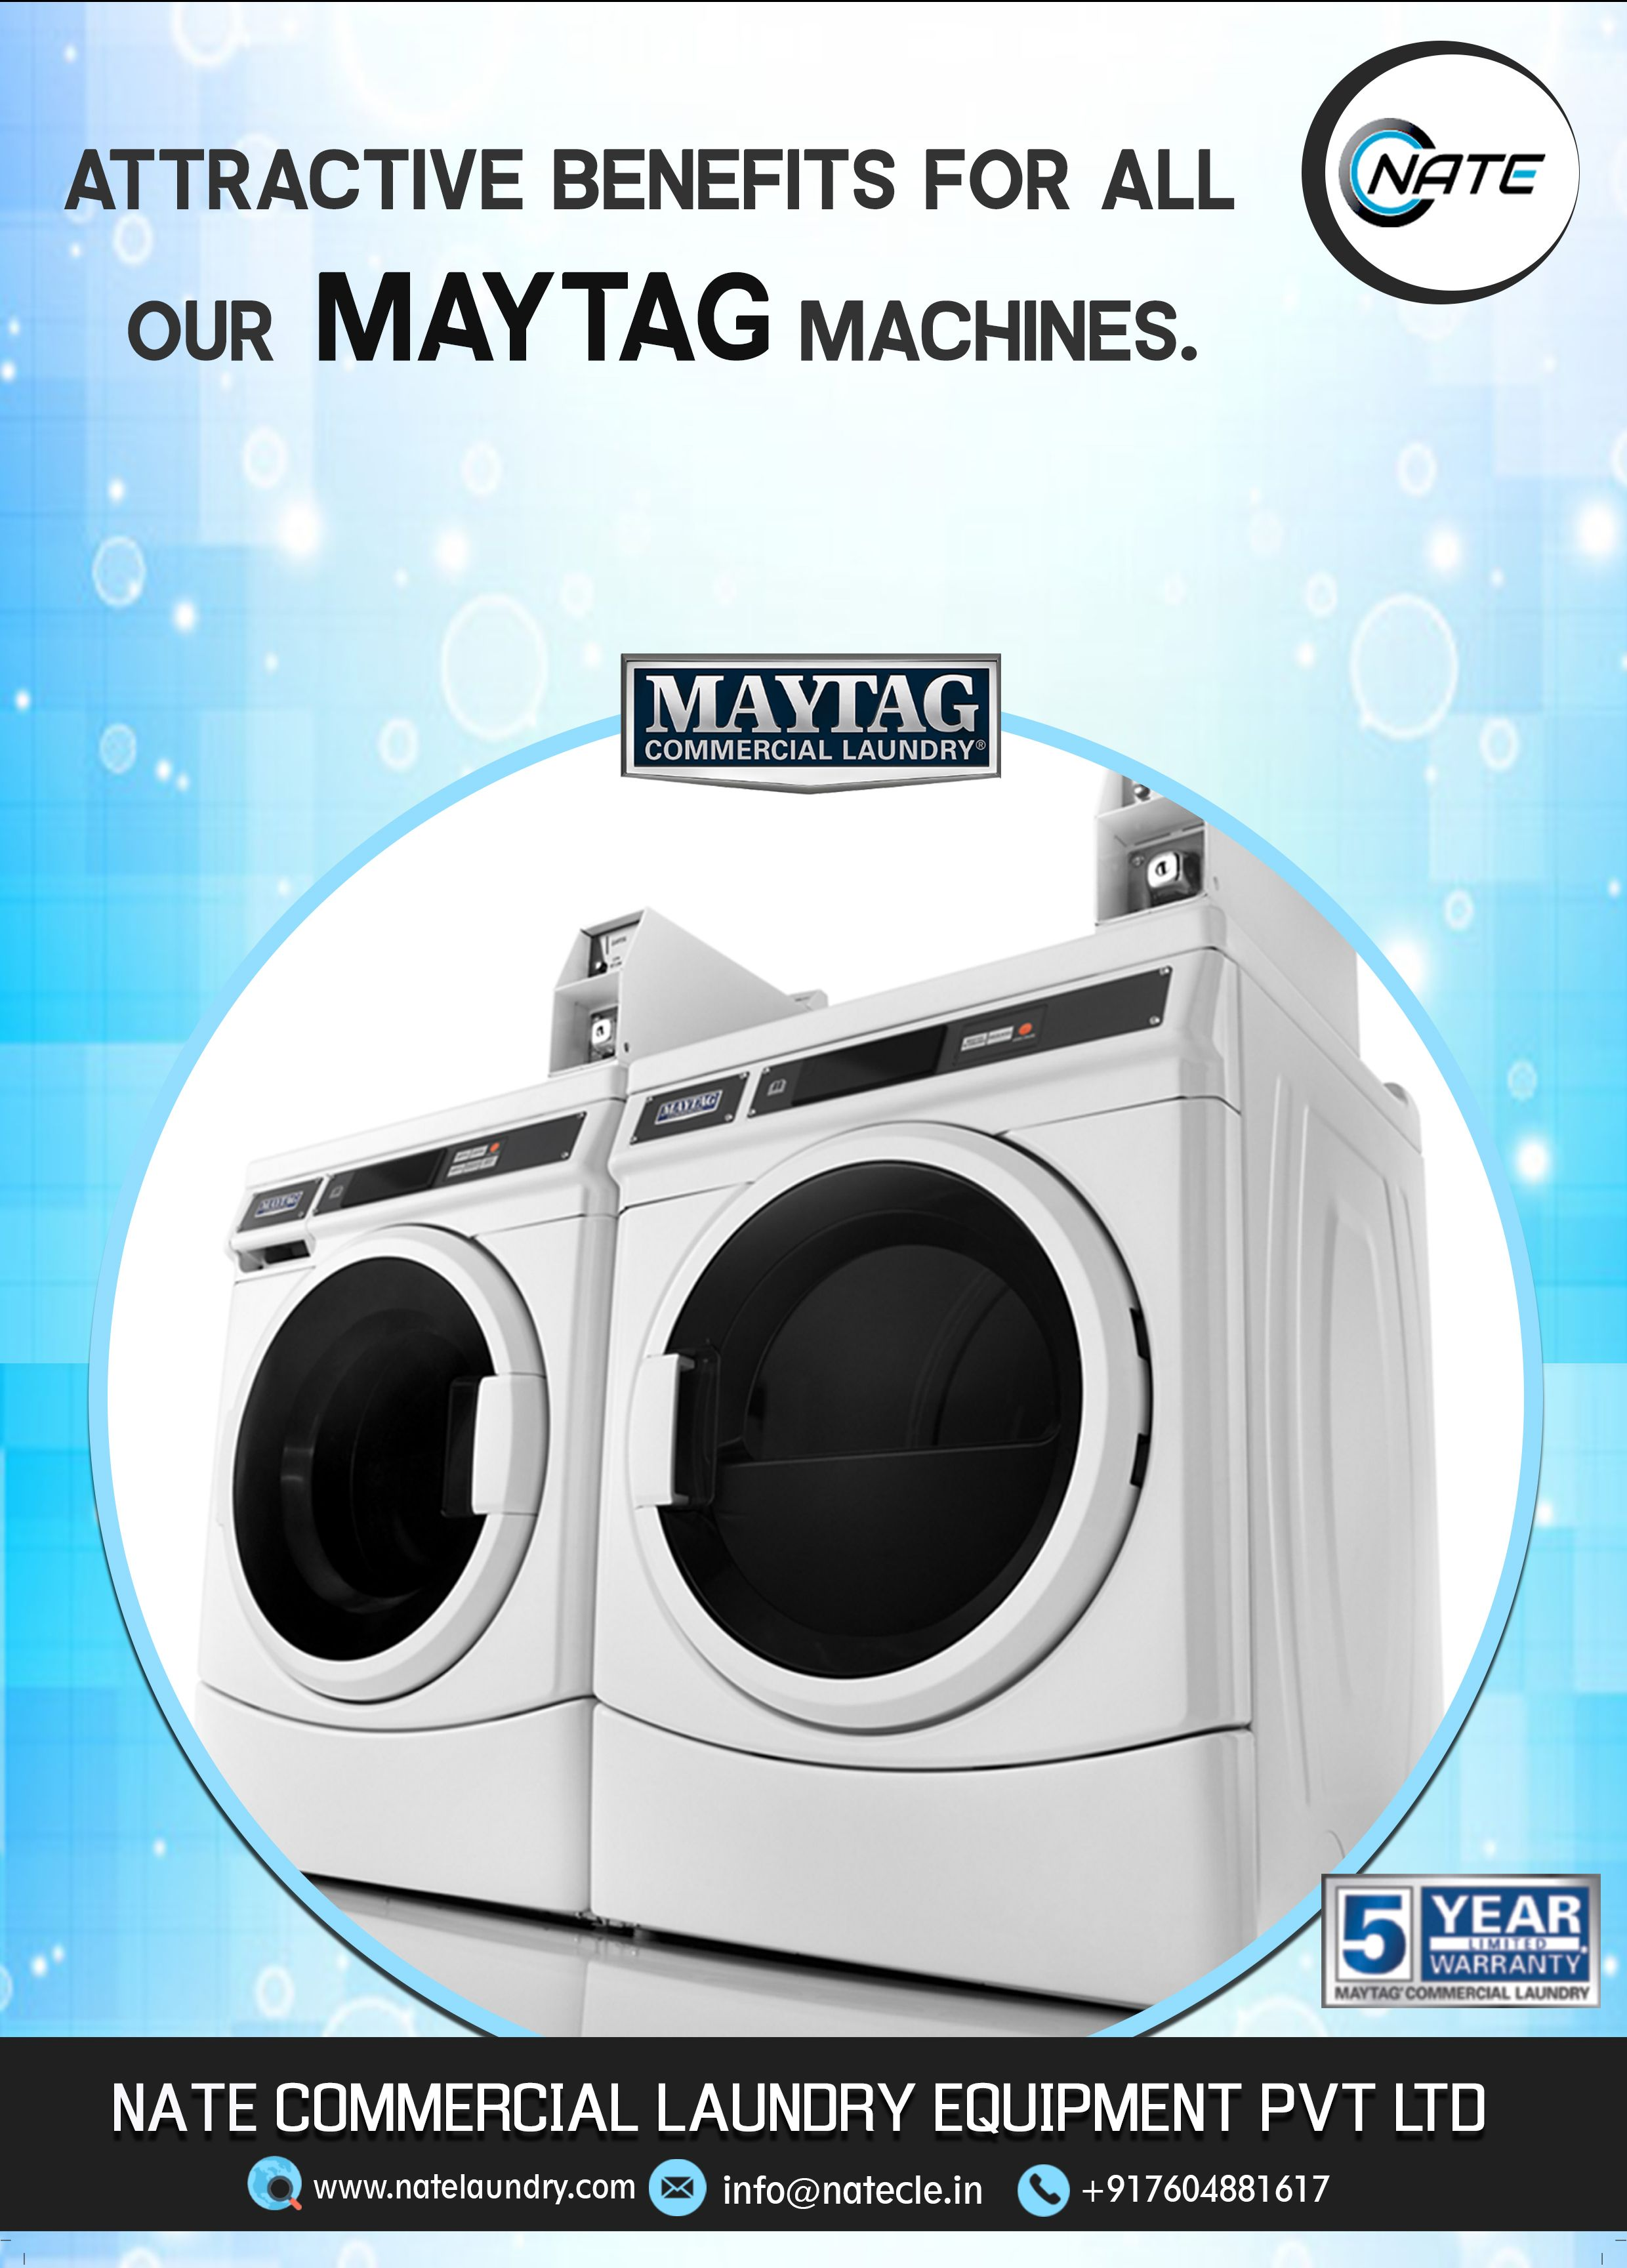 Nate Commercial Laundry Equipment Distributor Call Us 91